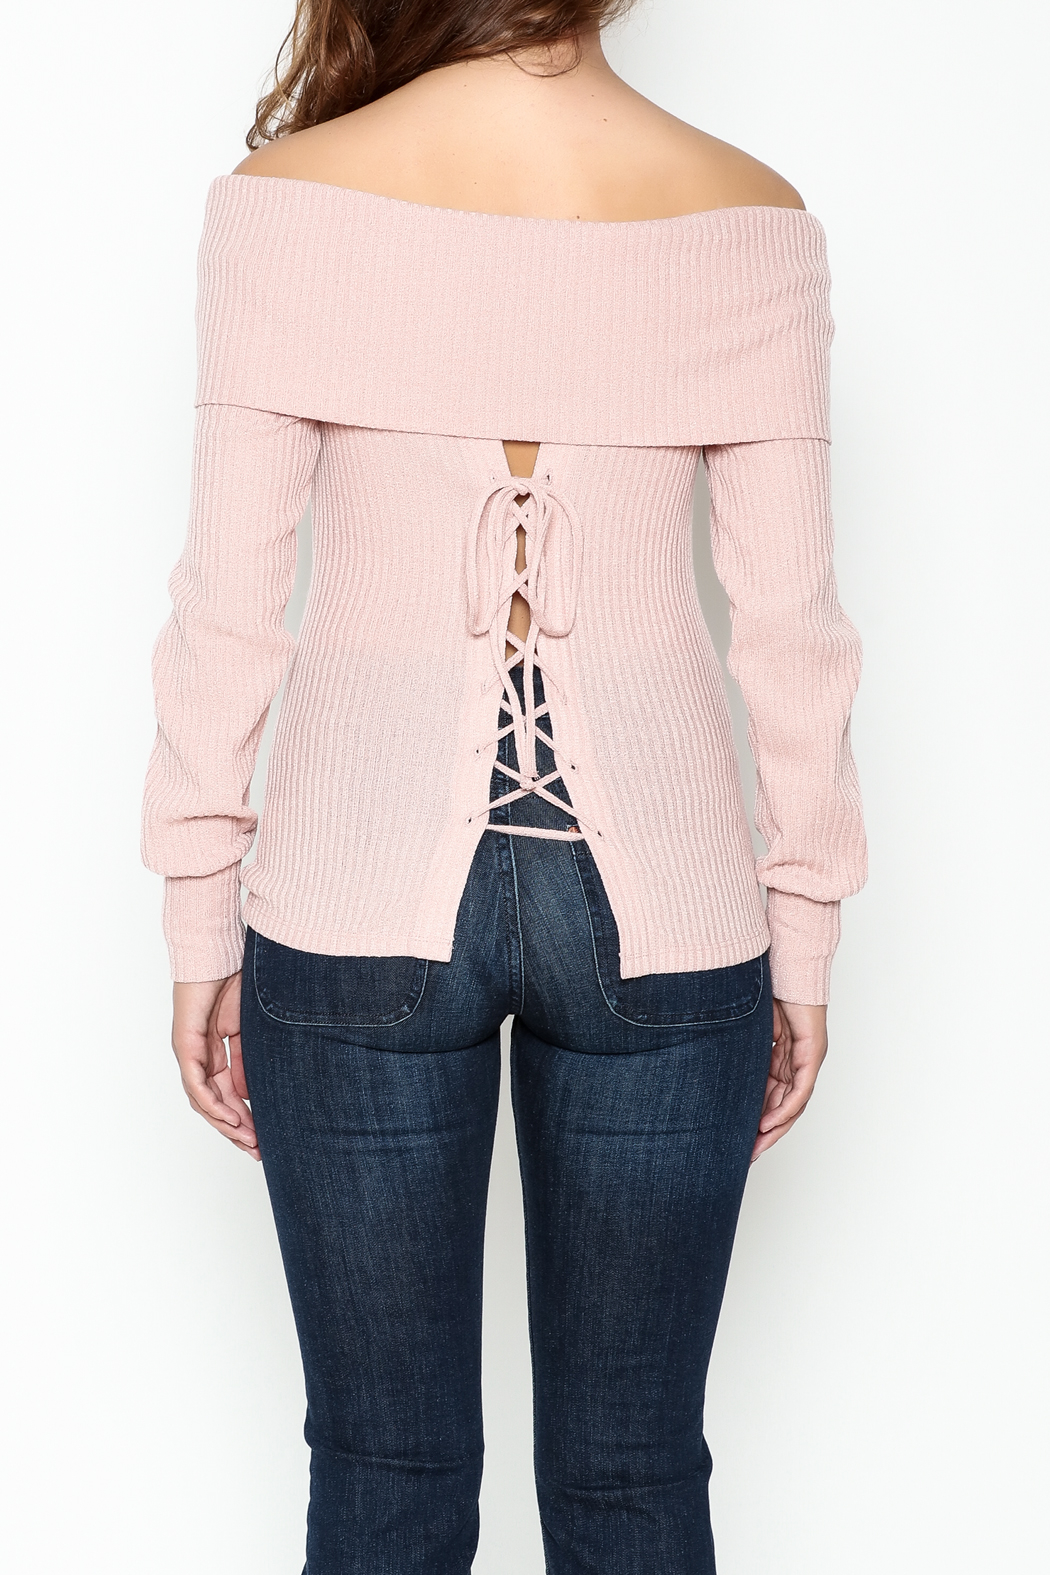 HYFVE Lace Up Back Sweater - Back Cropped Image